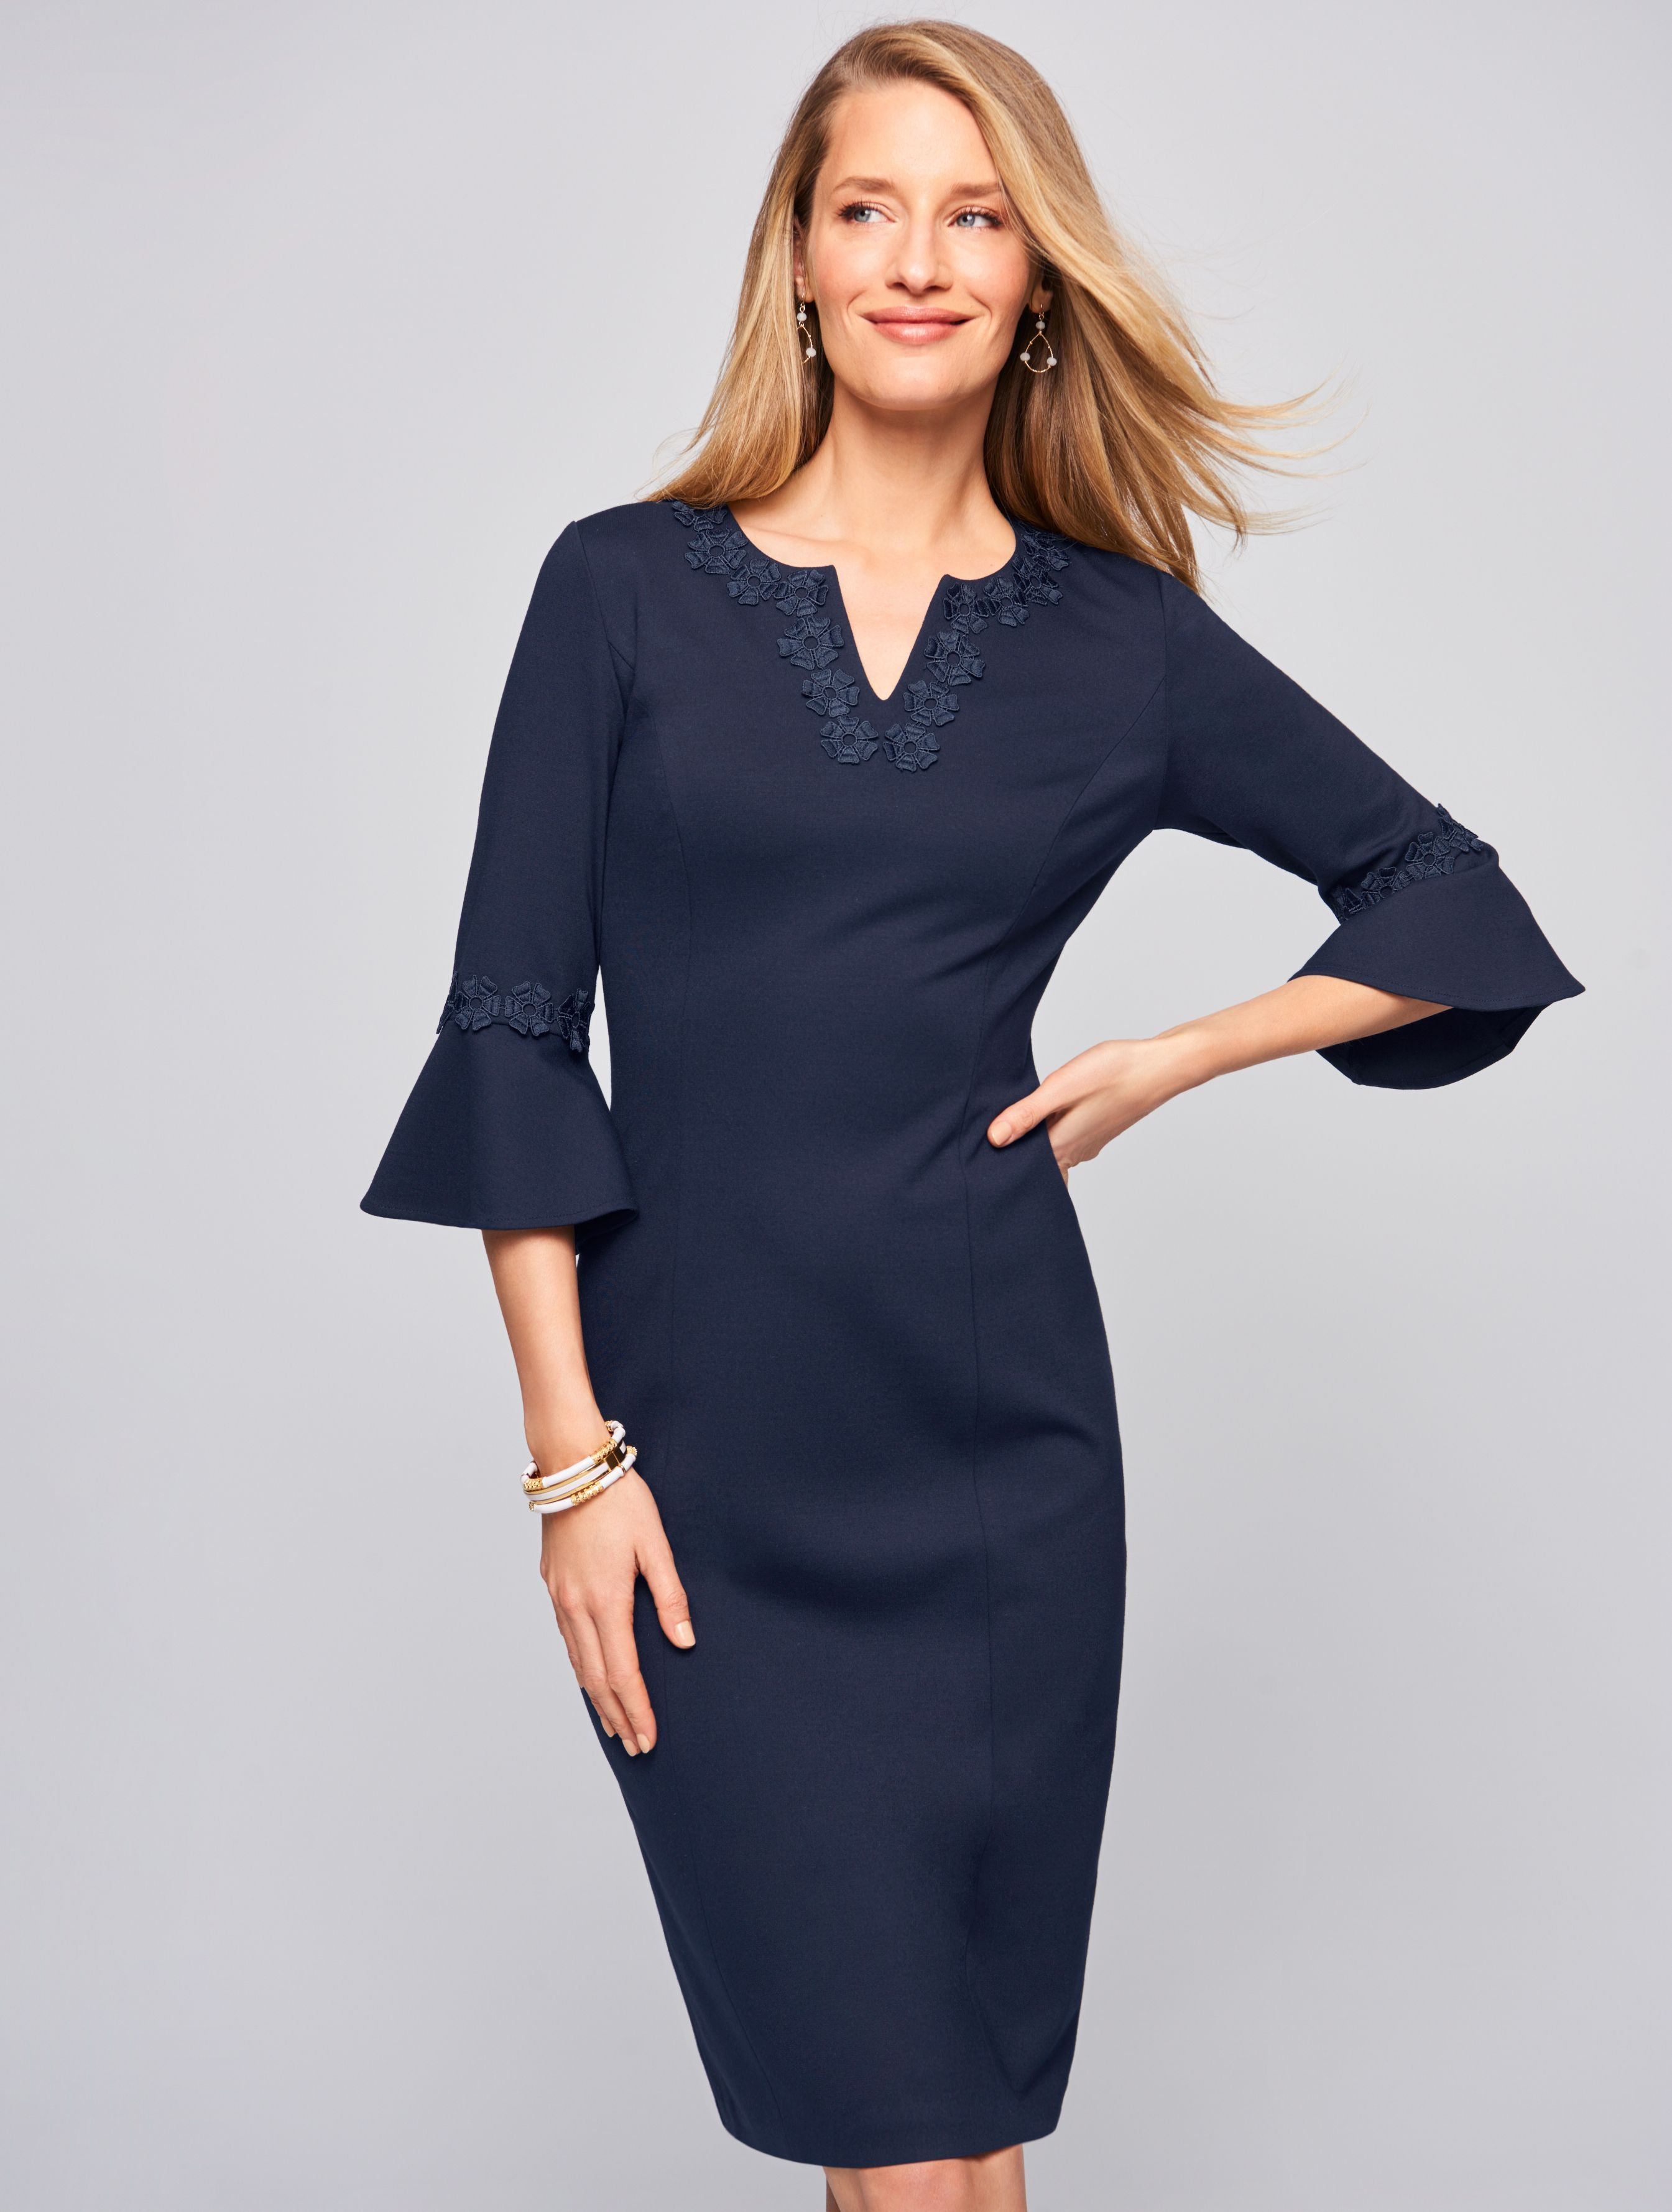 Tonal Embroidery And Feminine Sleeves Elevate The Look Of A Sophisicated Sheath Dress Wear It To The Office Then Clothes Fashionable Work Outfit Work Outfit [ 3557 x 2689 Pixel ]